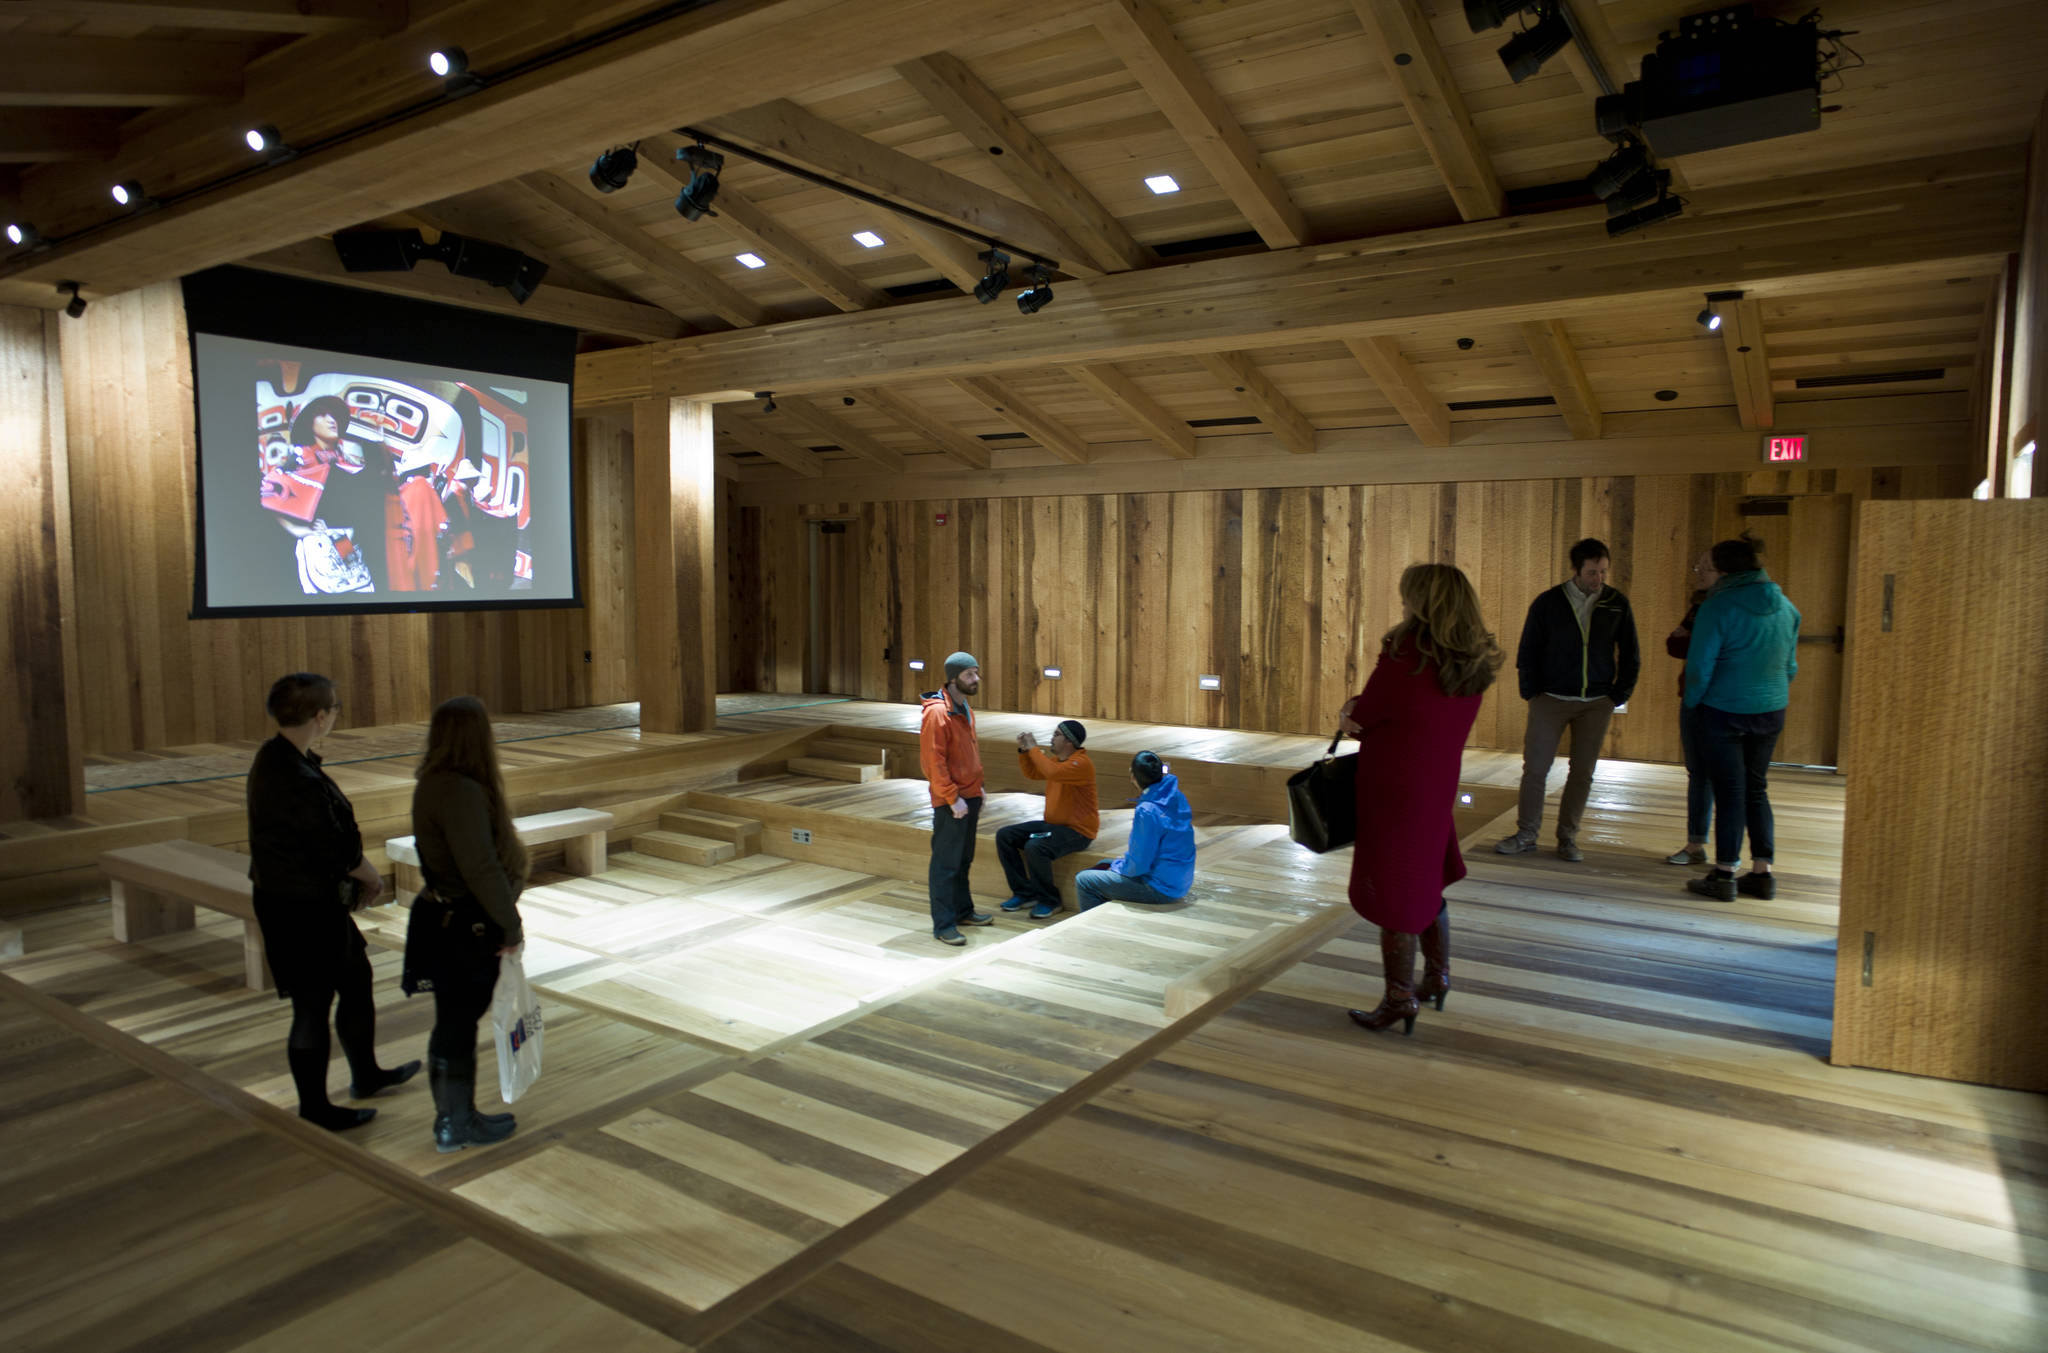 Guests view the Clan House inside the new Walter Soboleff Center and home of the Sealaska Heritage Institute during a Sneak Peak event held on Thursday. (Michael Penn | Juneau Empire File)